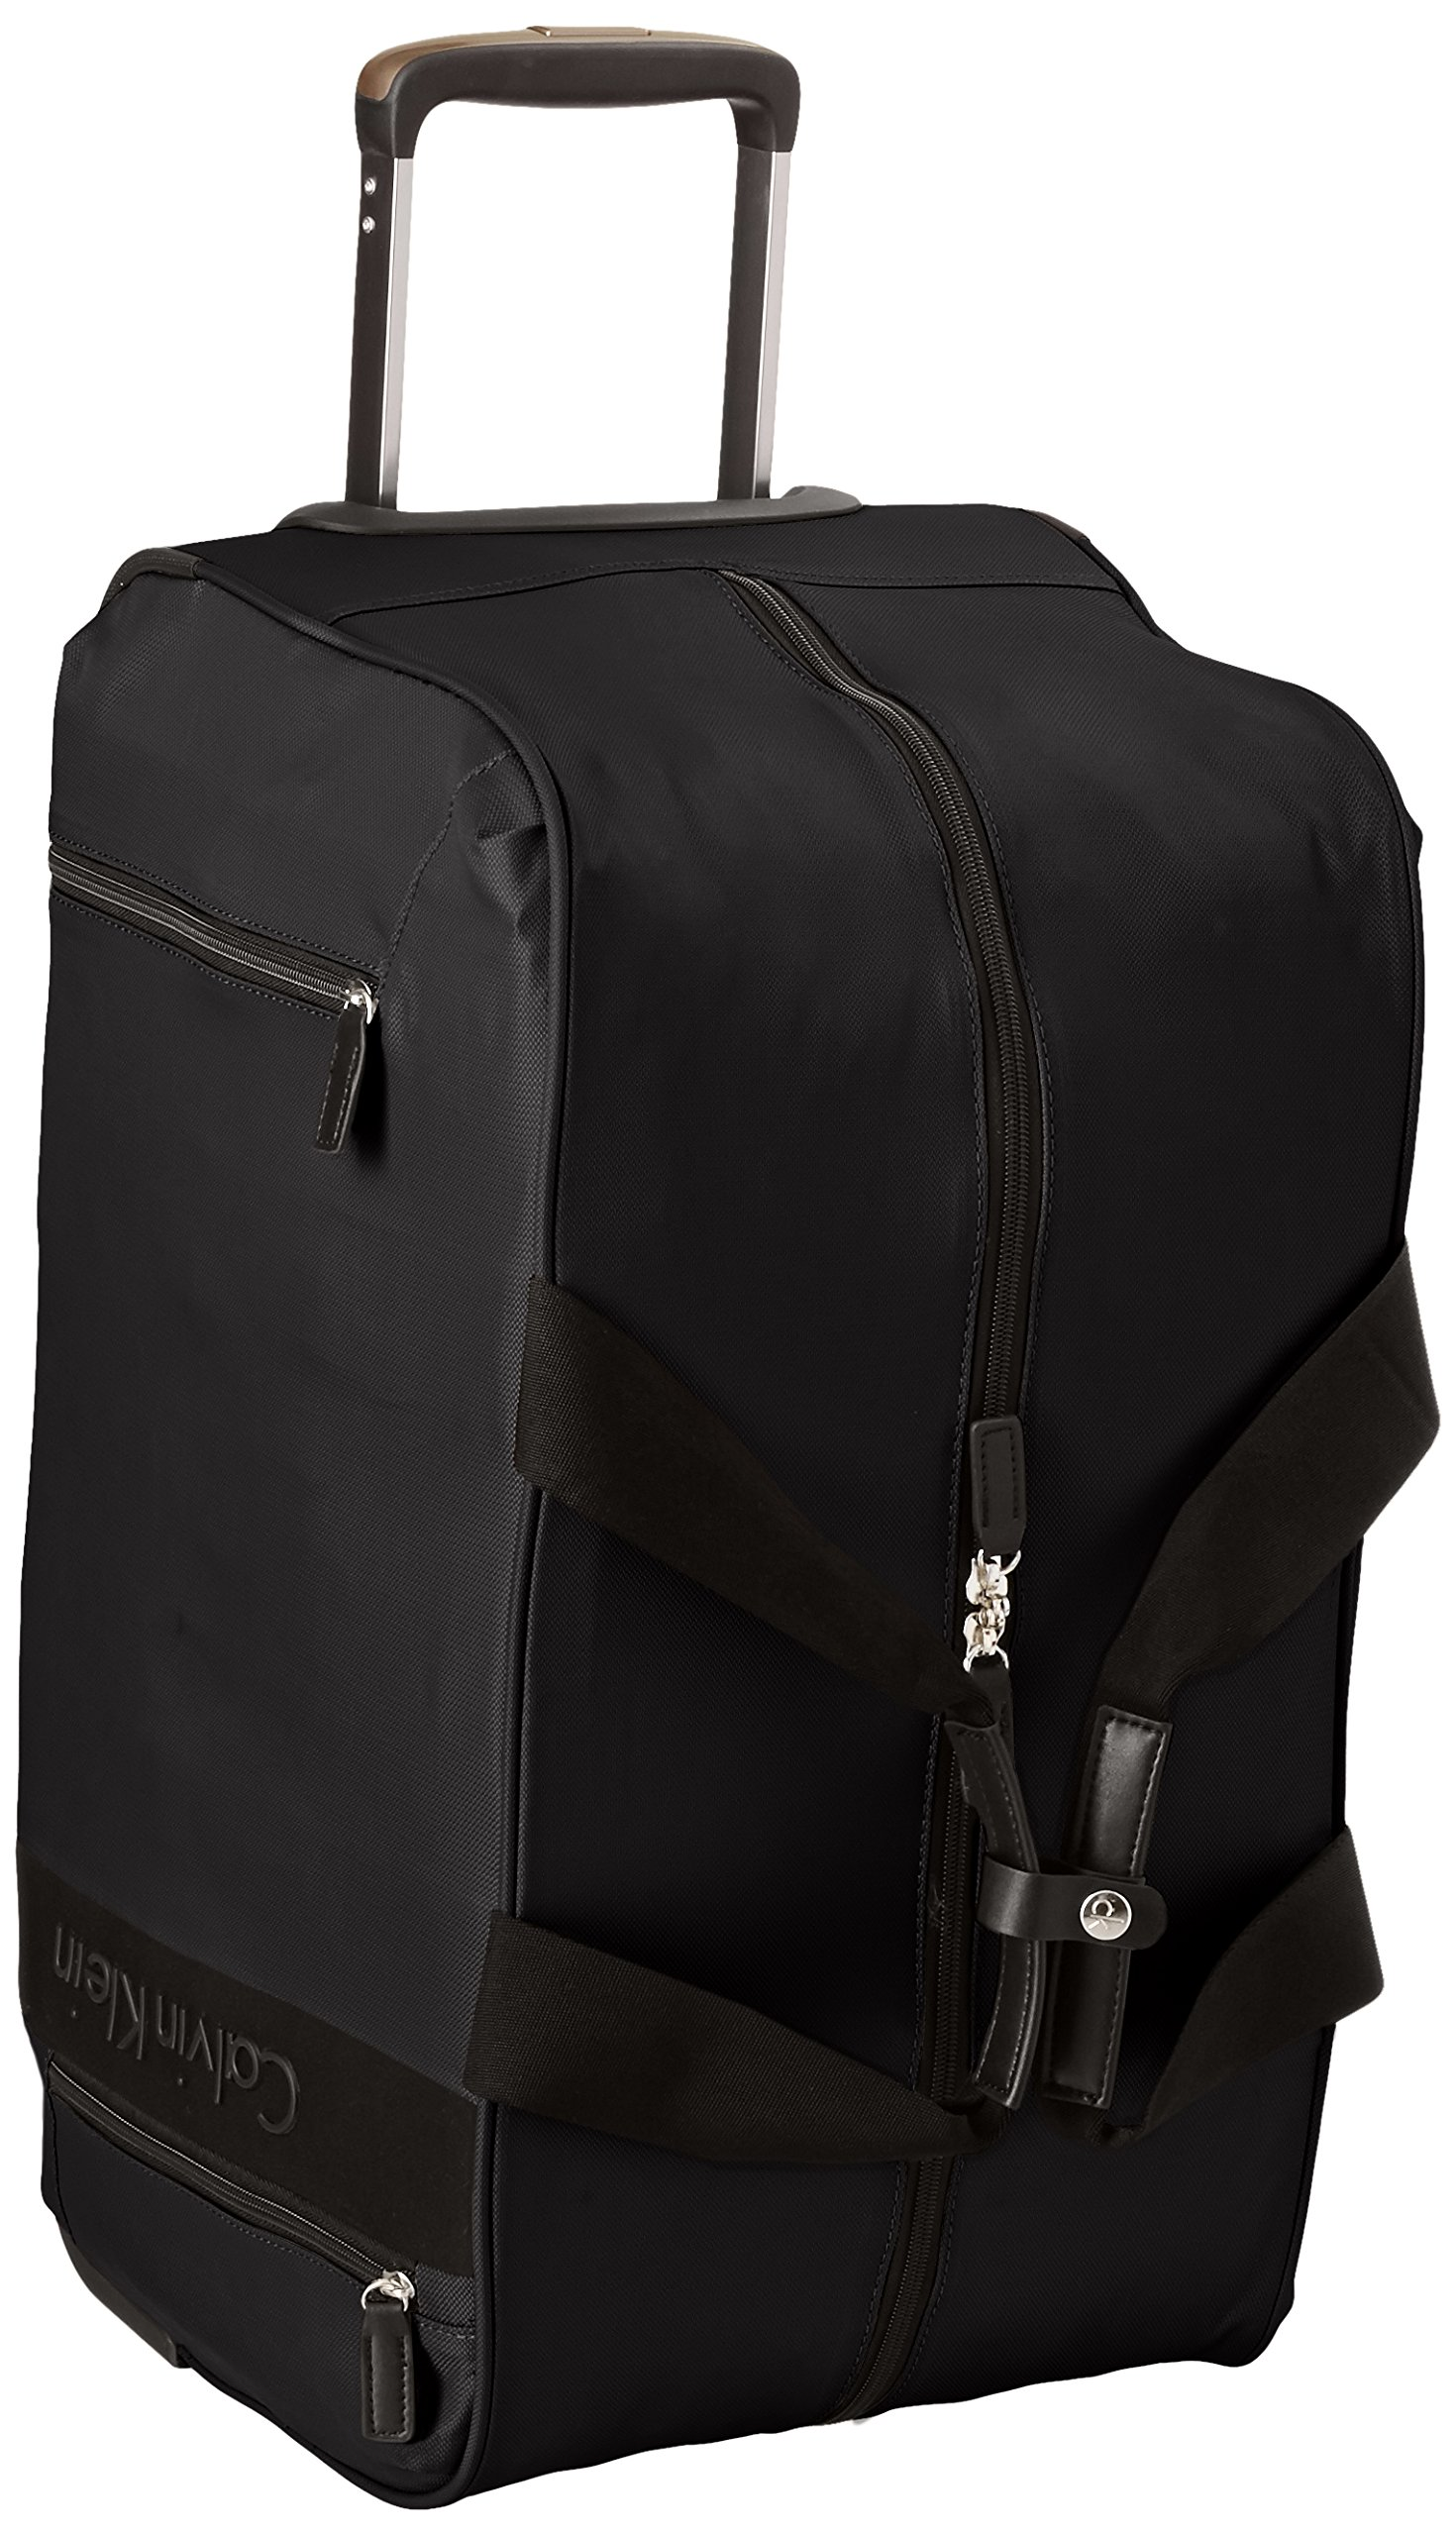 Calvin Klein Northport 2.0 Wheeled Duffle, Black, One Size by Calvin Klein